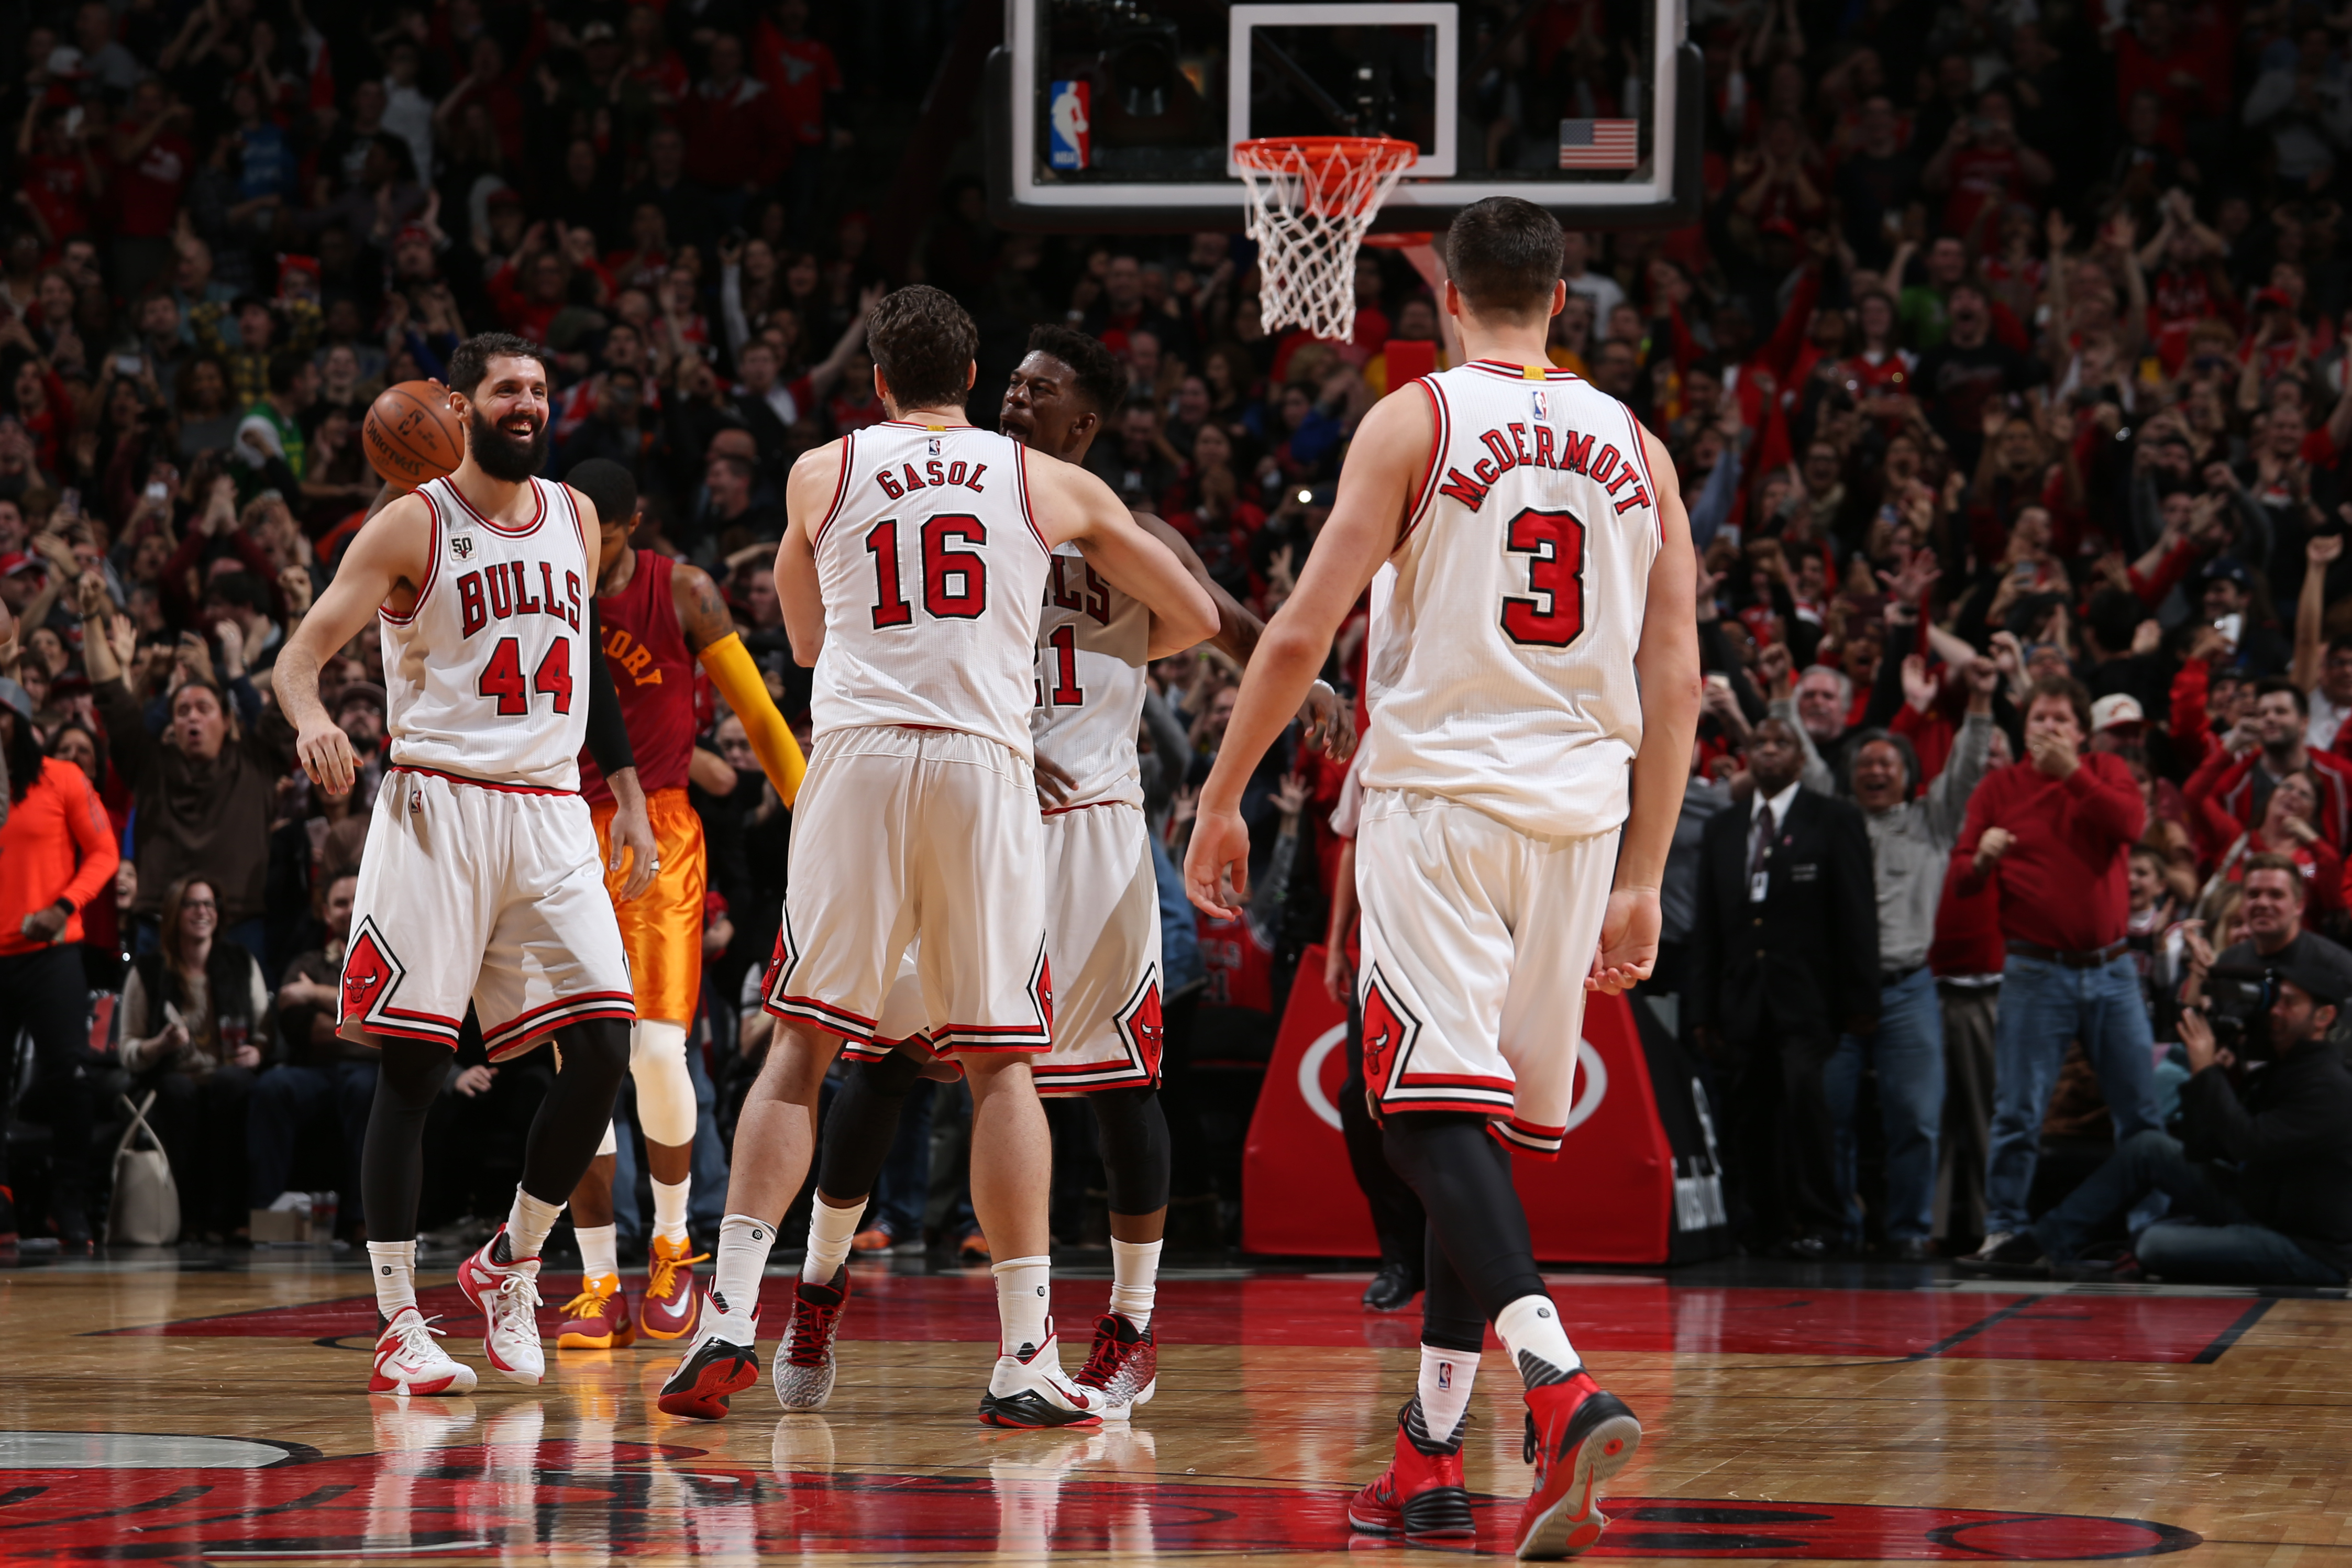 CHICAGO, IL - DECEMBER 30:  Pau Gasol #16 of the Chicago Bulls hugs Jimmy Butler #21 of the Chicago Bulls after scoring the go ahead basket in overtime against the Indiana Pacers on December 30, 2015 at the United Center in Chicago, Illinois. (Photo by Ga